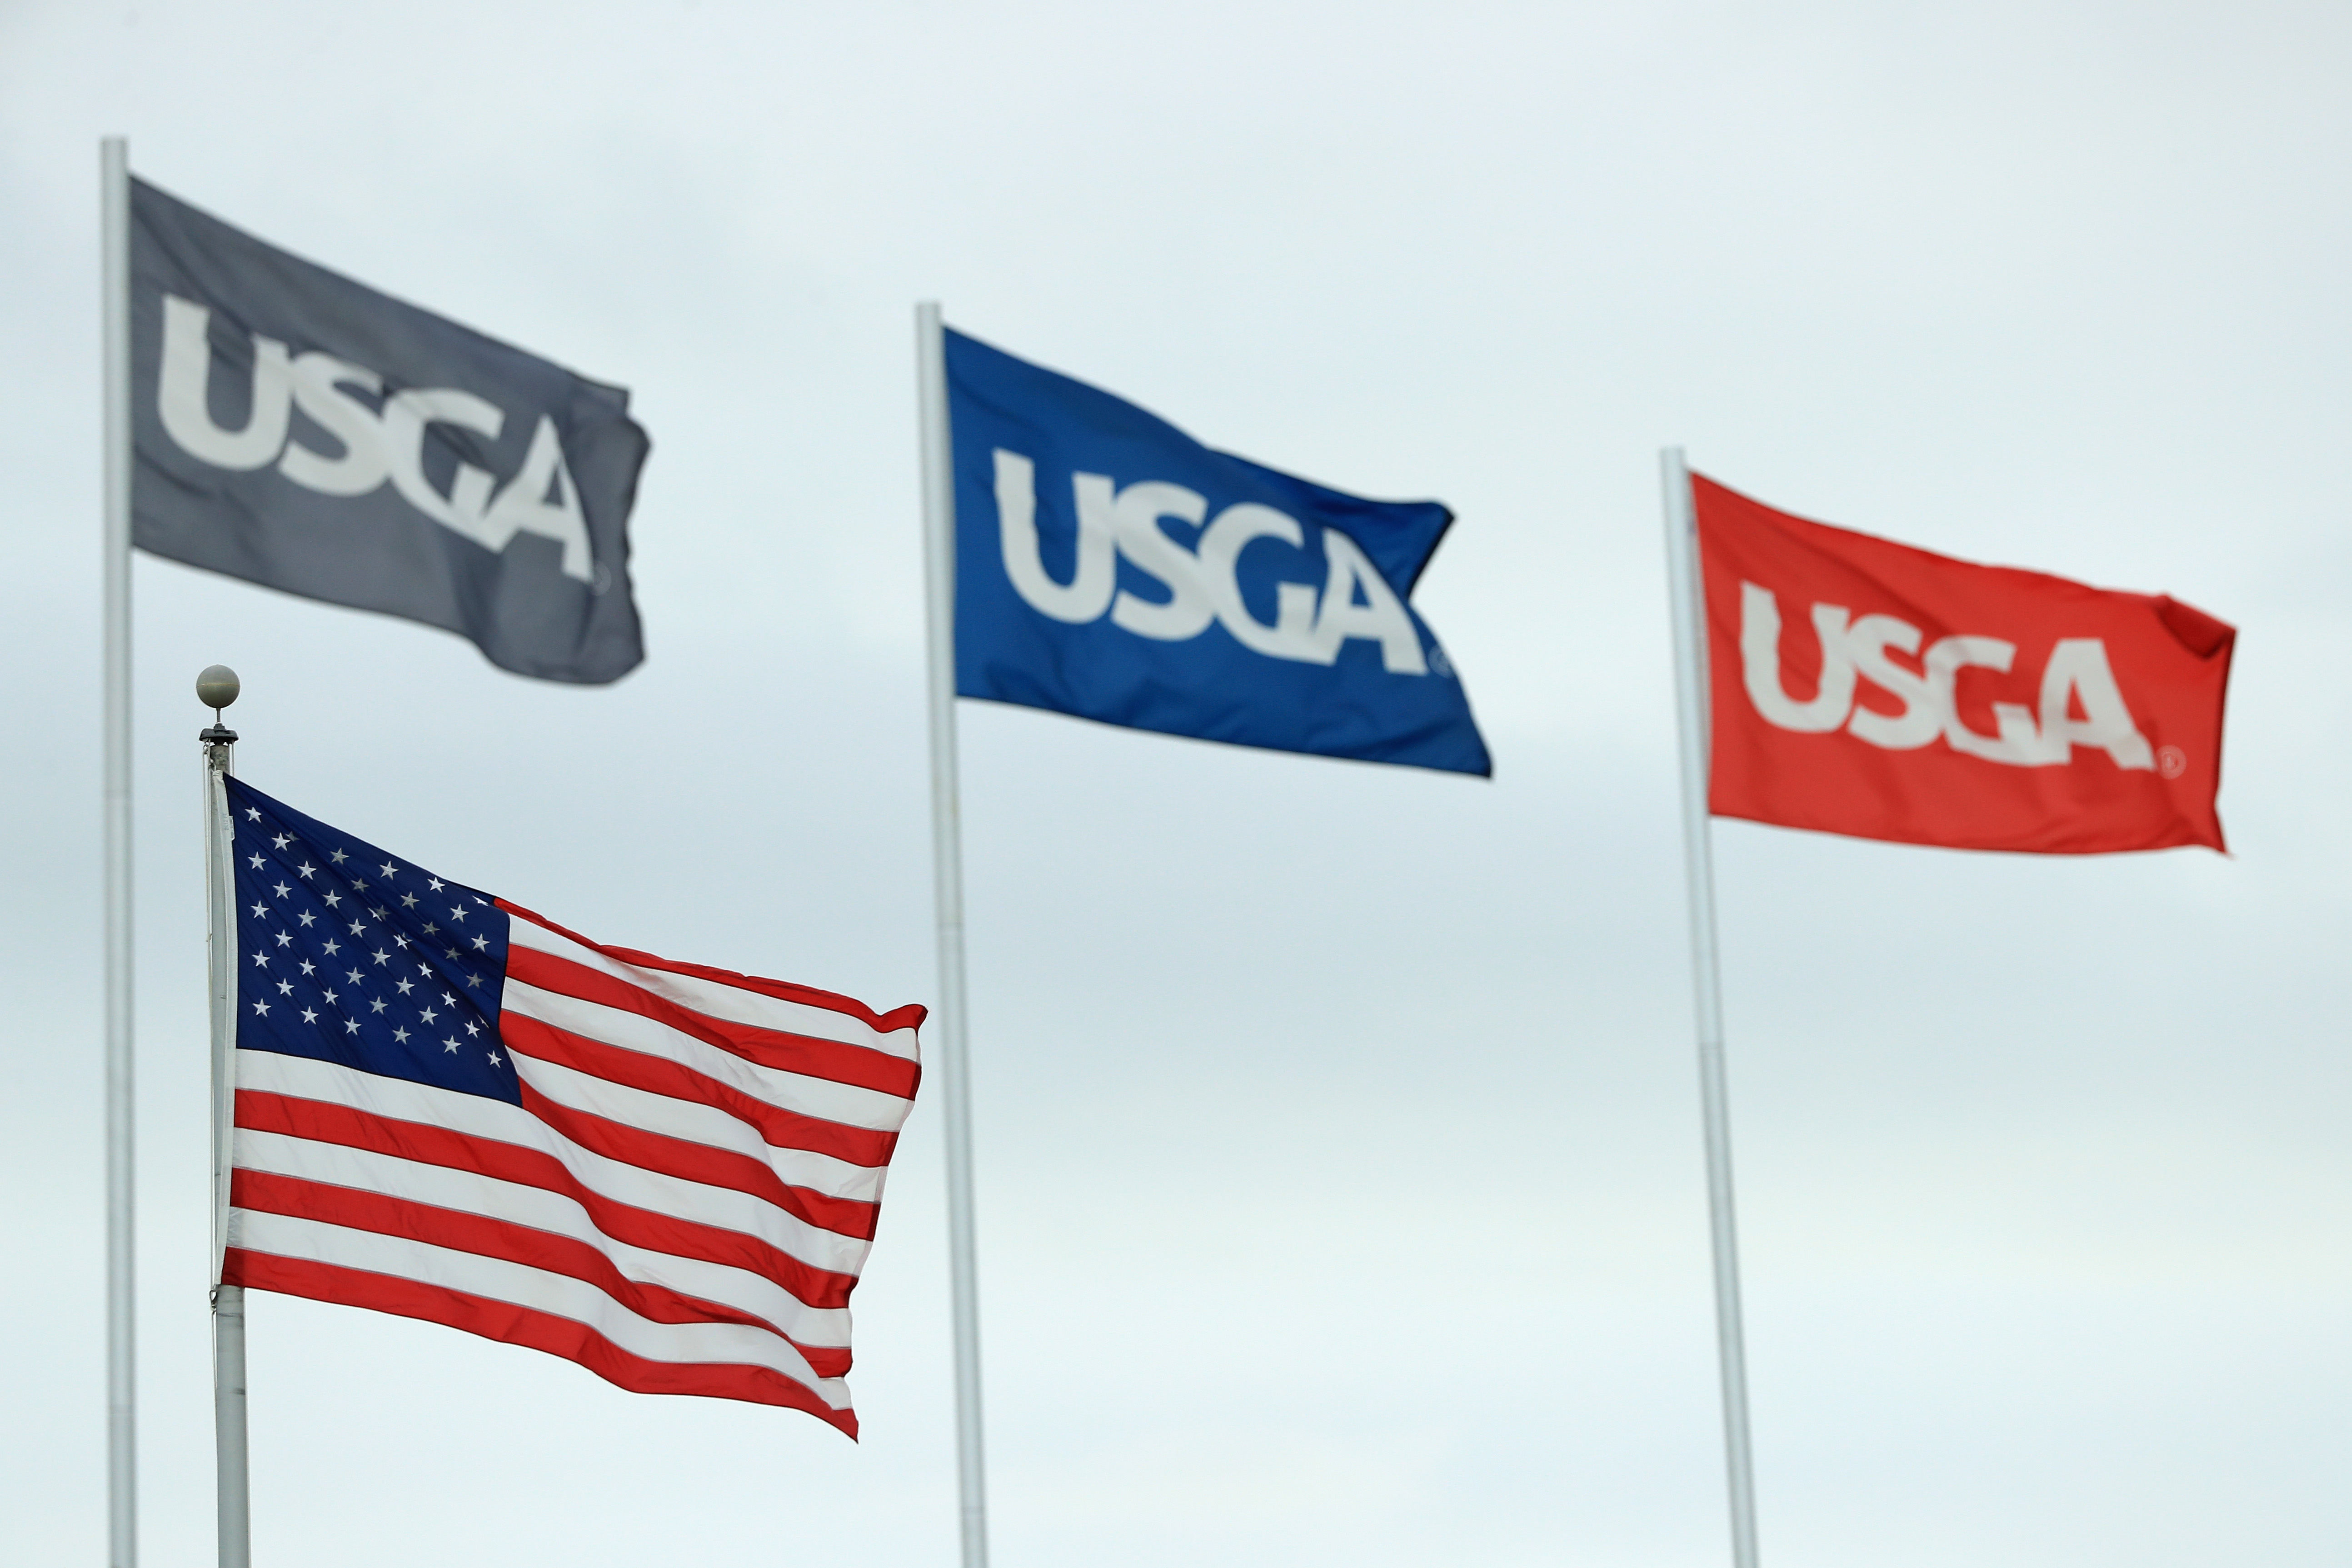 SOUTHAMPTON, NY - JUNE 15: An American flag and USGA flags blow in the breeze during the second round of the 2018 U.S. Open at Shinnecock Hills Golf Club on June 15, 2018 in Southampton, New York. (Photo by Andrew Redington/Getty Images)